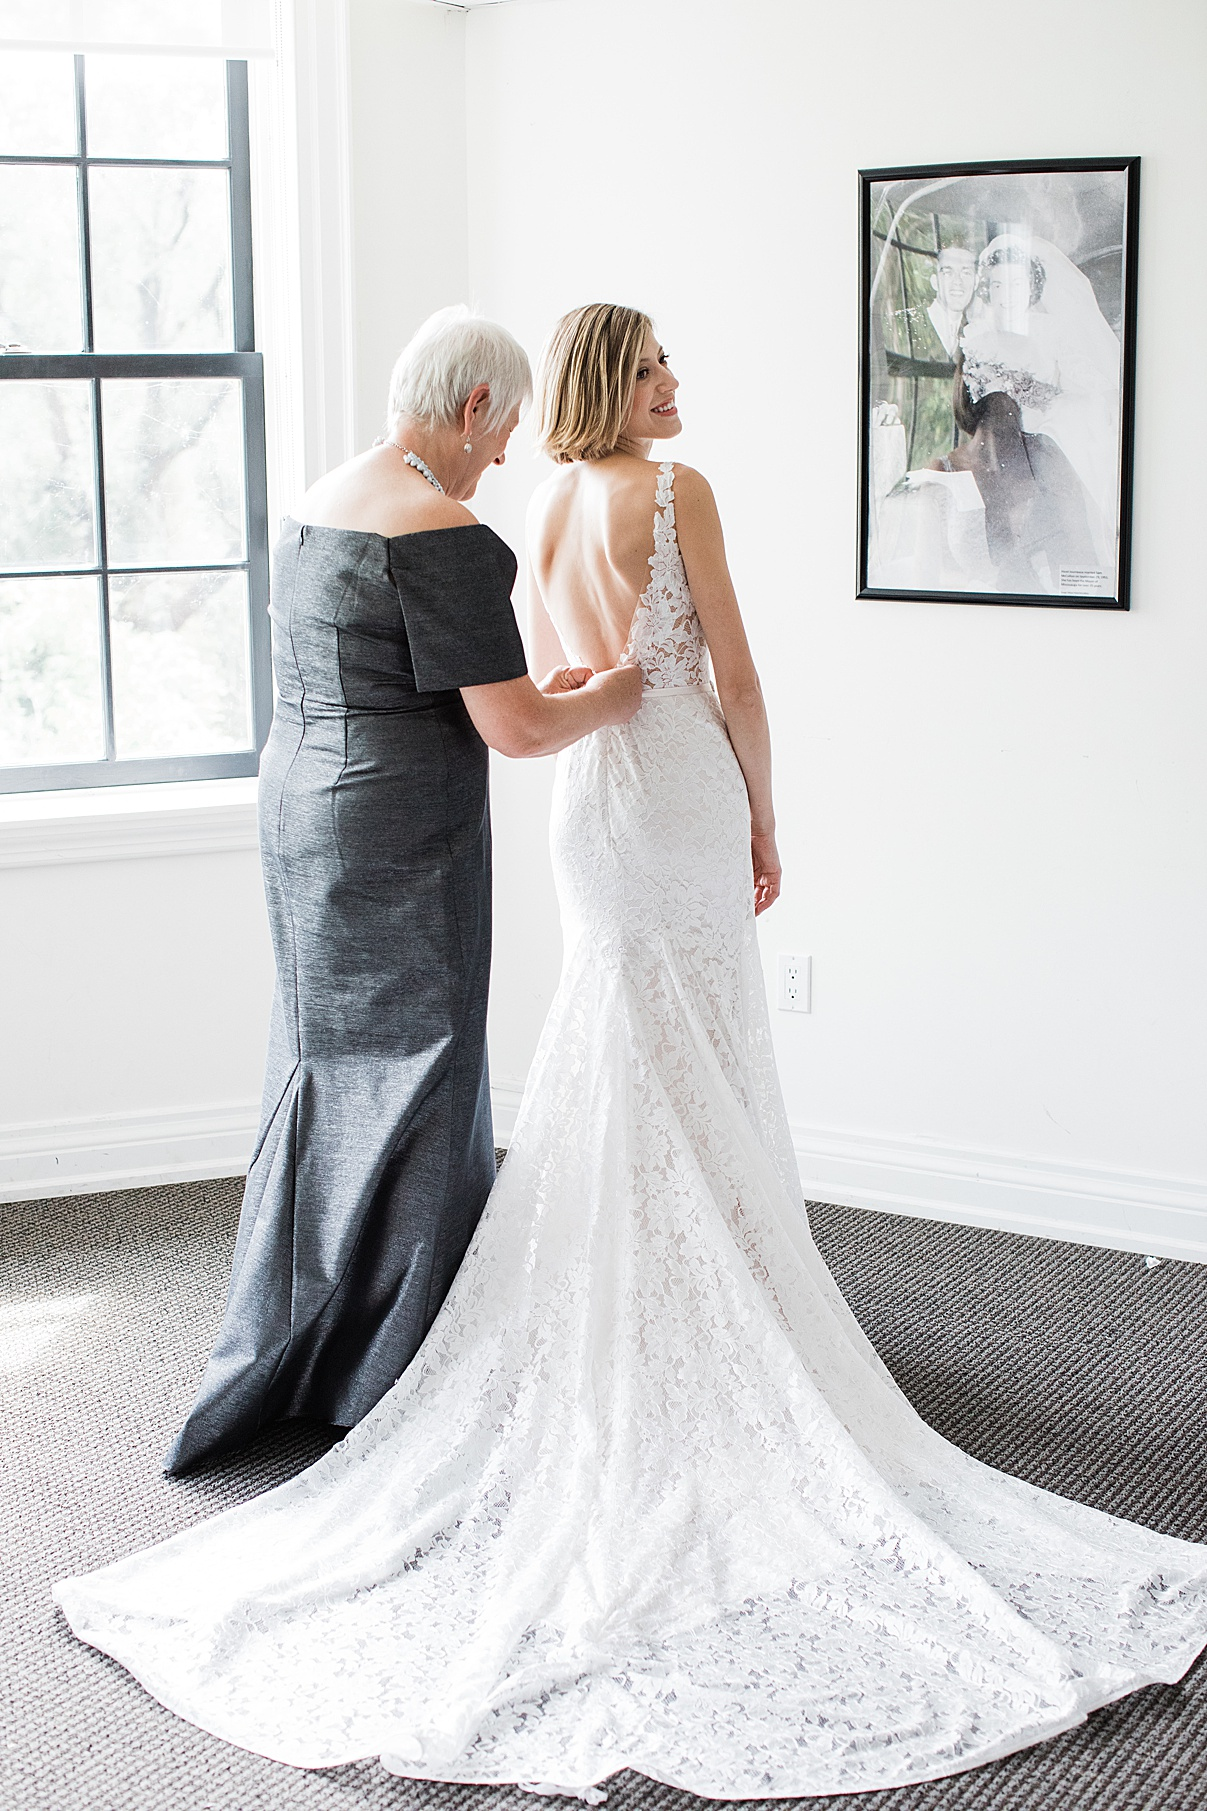 Bride and mother zipping her into dress| Harding Waterfront Estate Wedding| Ontario wedding photographer| Toronto wedding photographer| 3 Photography | 3photography.ca